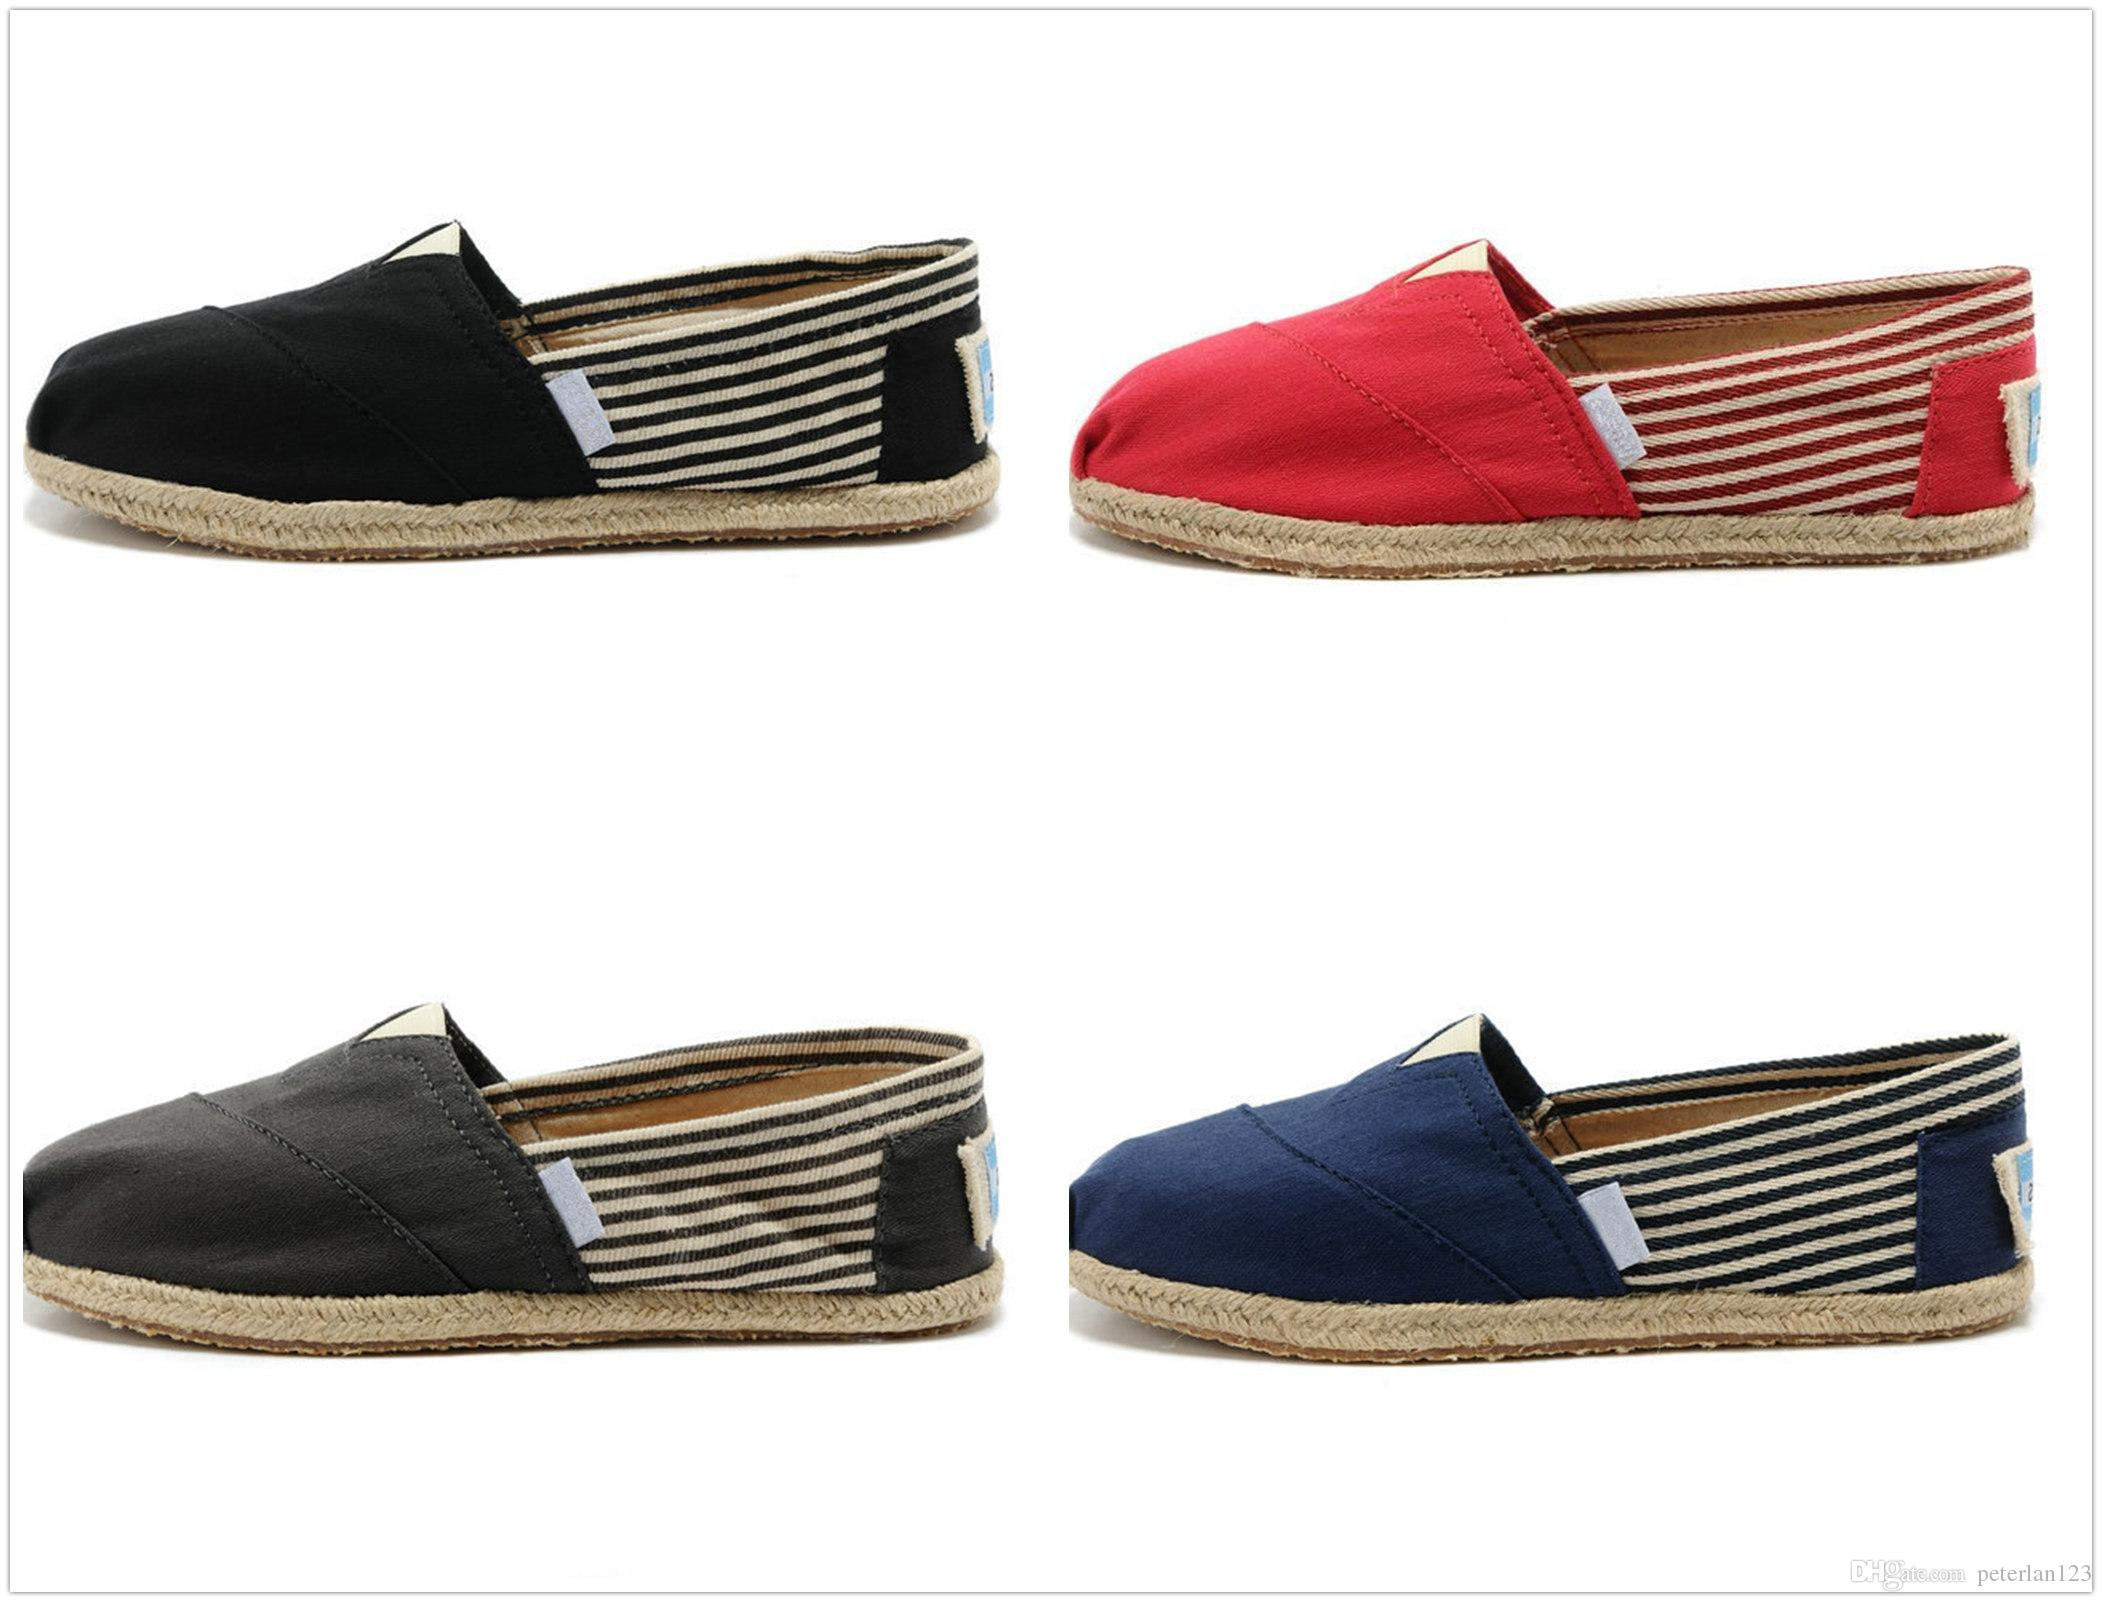 7499230a3 Drop Shipping Hot Brand Men And Women Wholesale Fashion Sneakers Canvas  Shoes Loafers Jute Flats Espadrilles Casual Breathble Shoes With Box  Italian Shoes ...